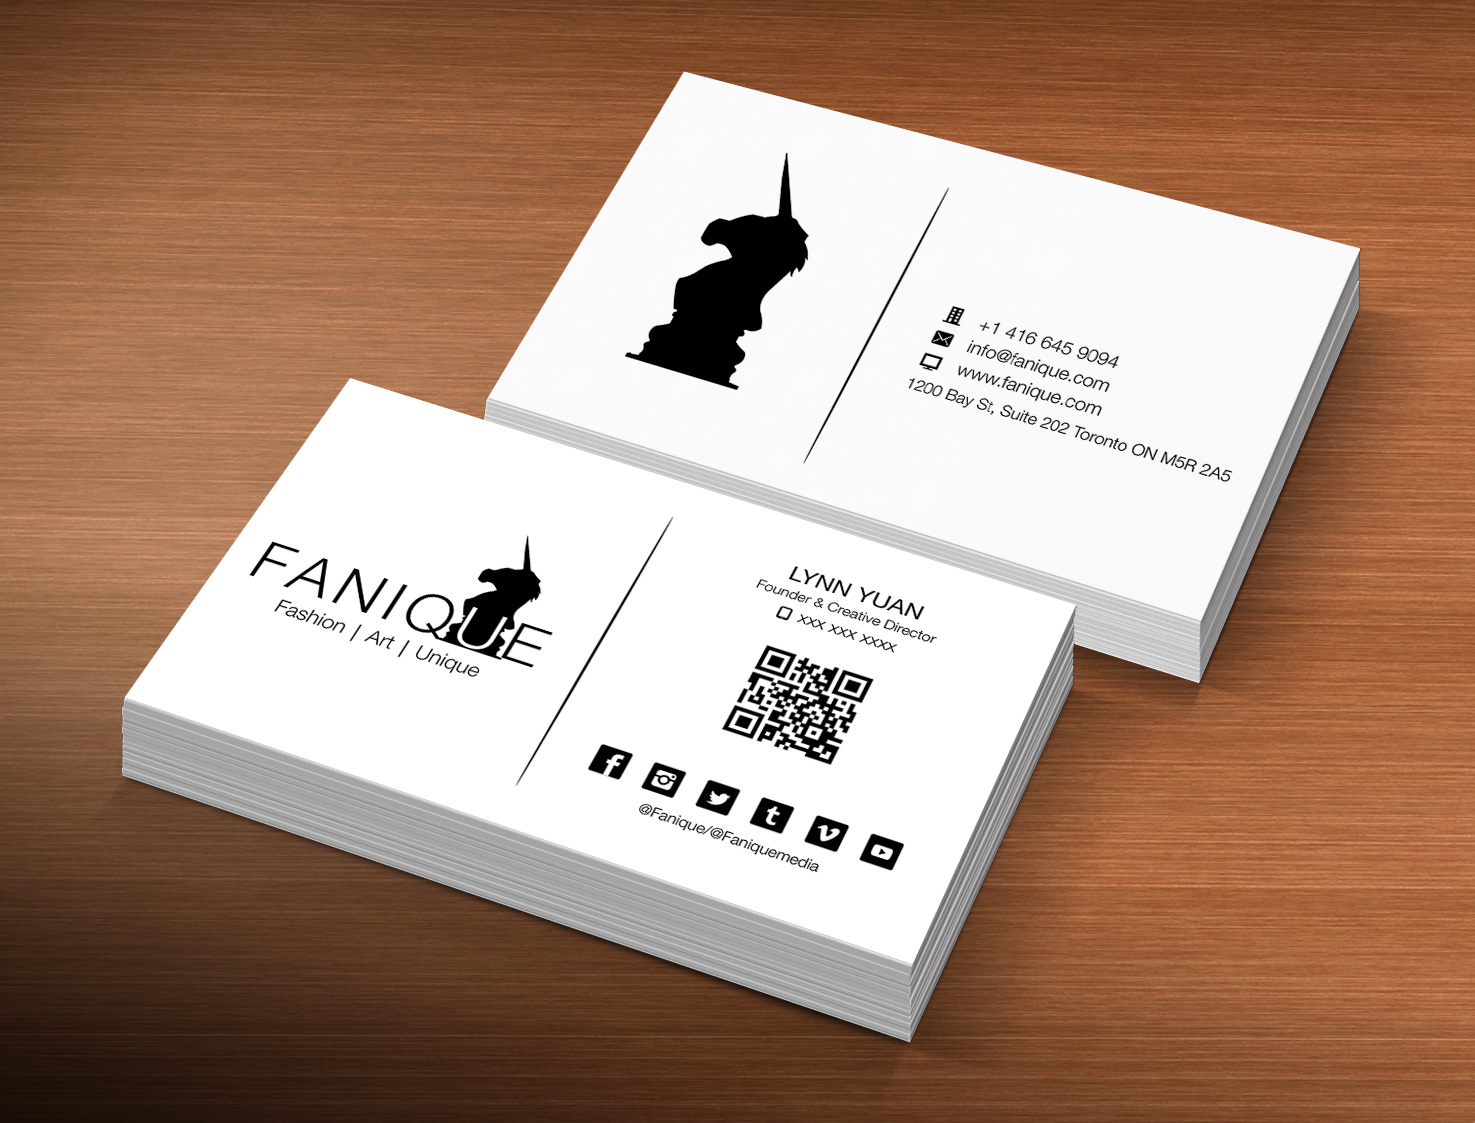 Business Card Design By Creation Lanka For Fanique